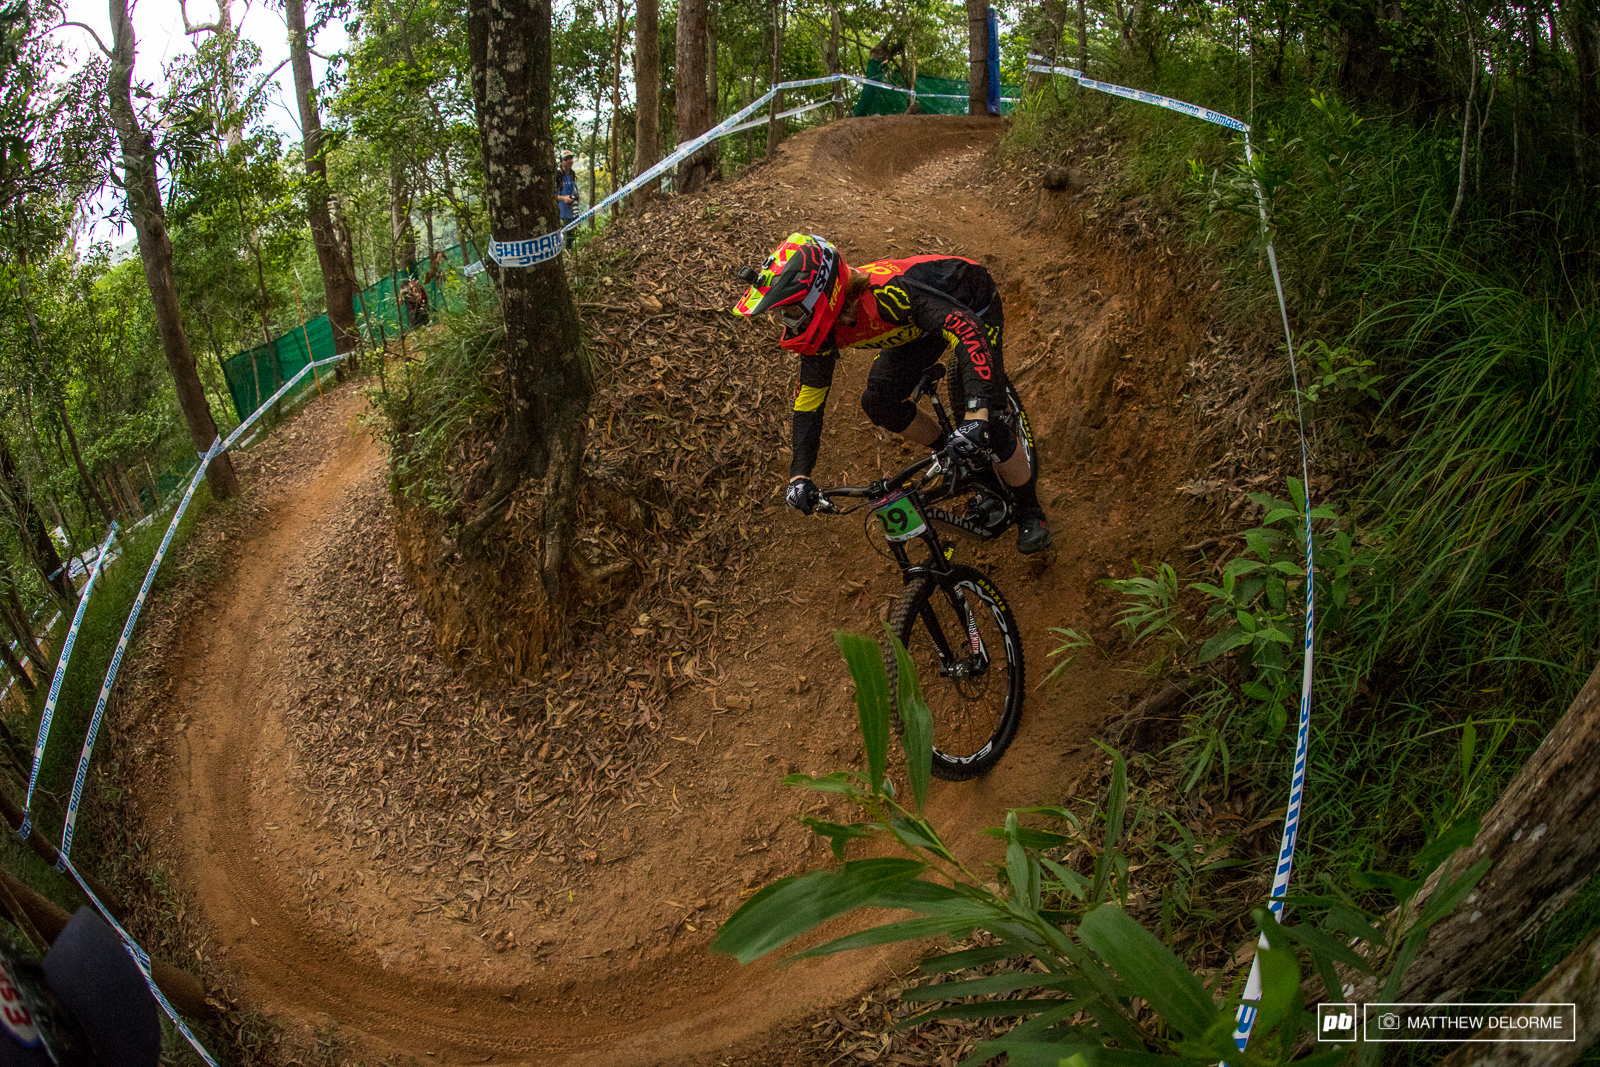 Brage Vestavik went down hard in practice. So far we have heard conflicting reports on him. We wish him the best.